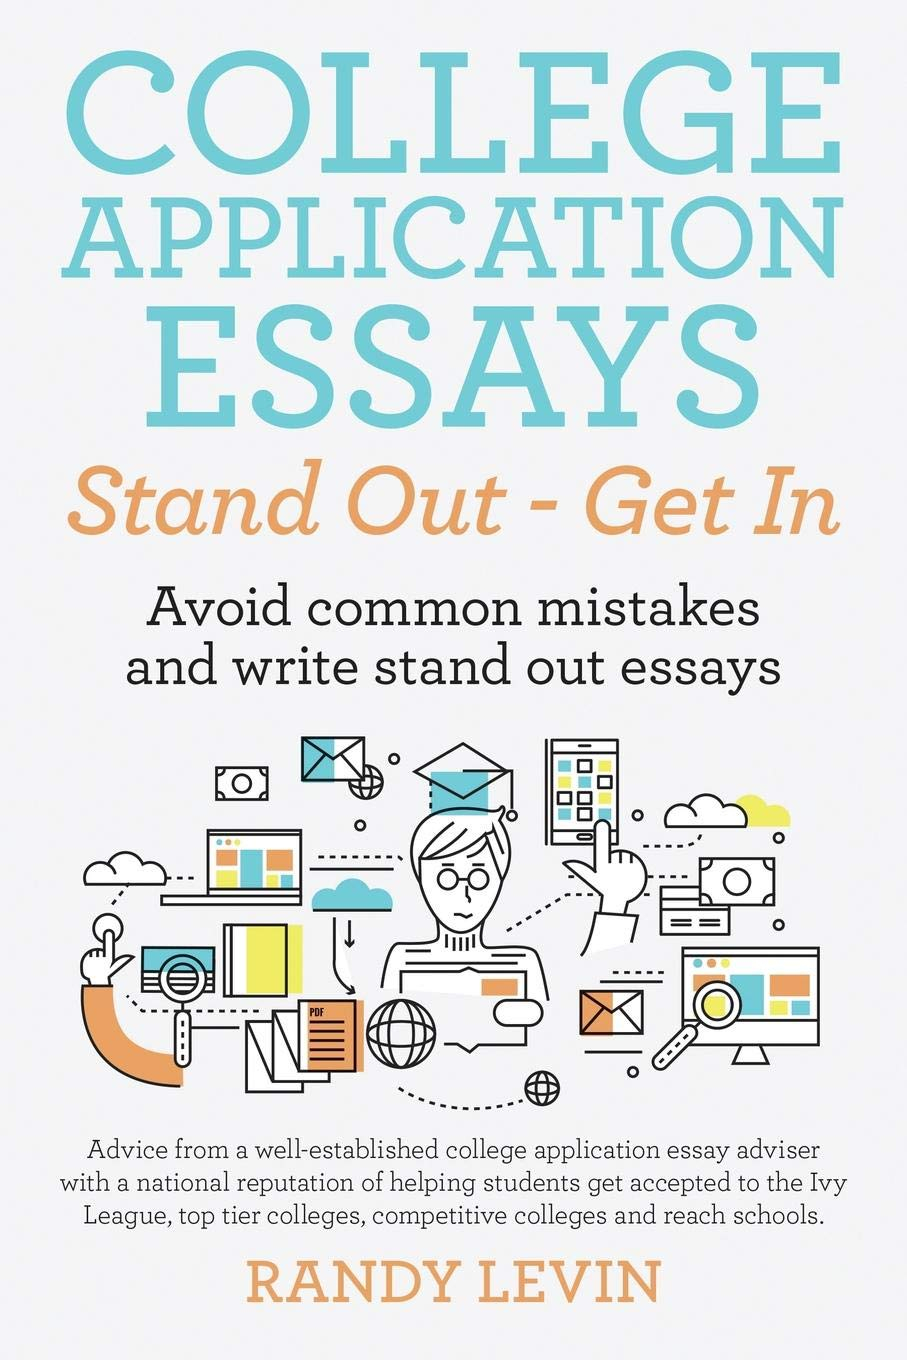 College Application Essays Stand Out - Get In: Avoid common